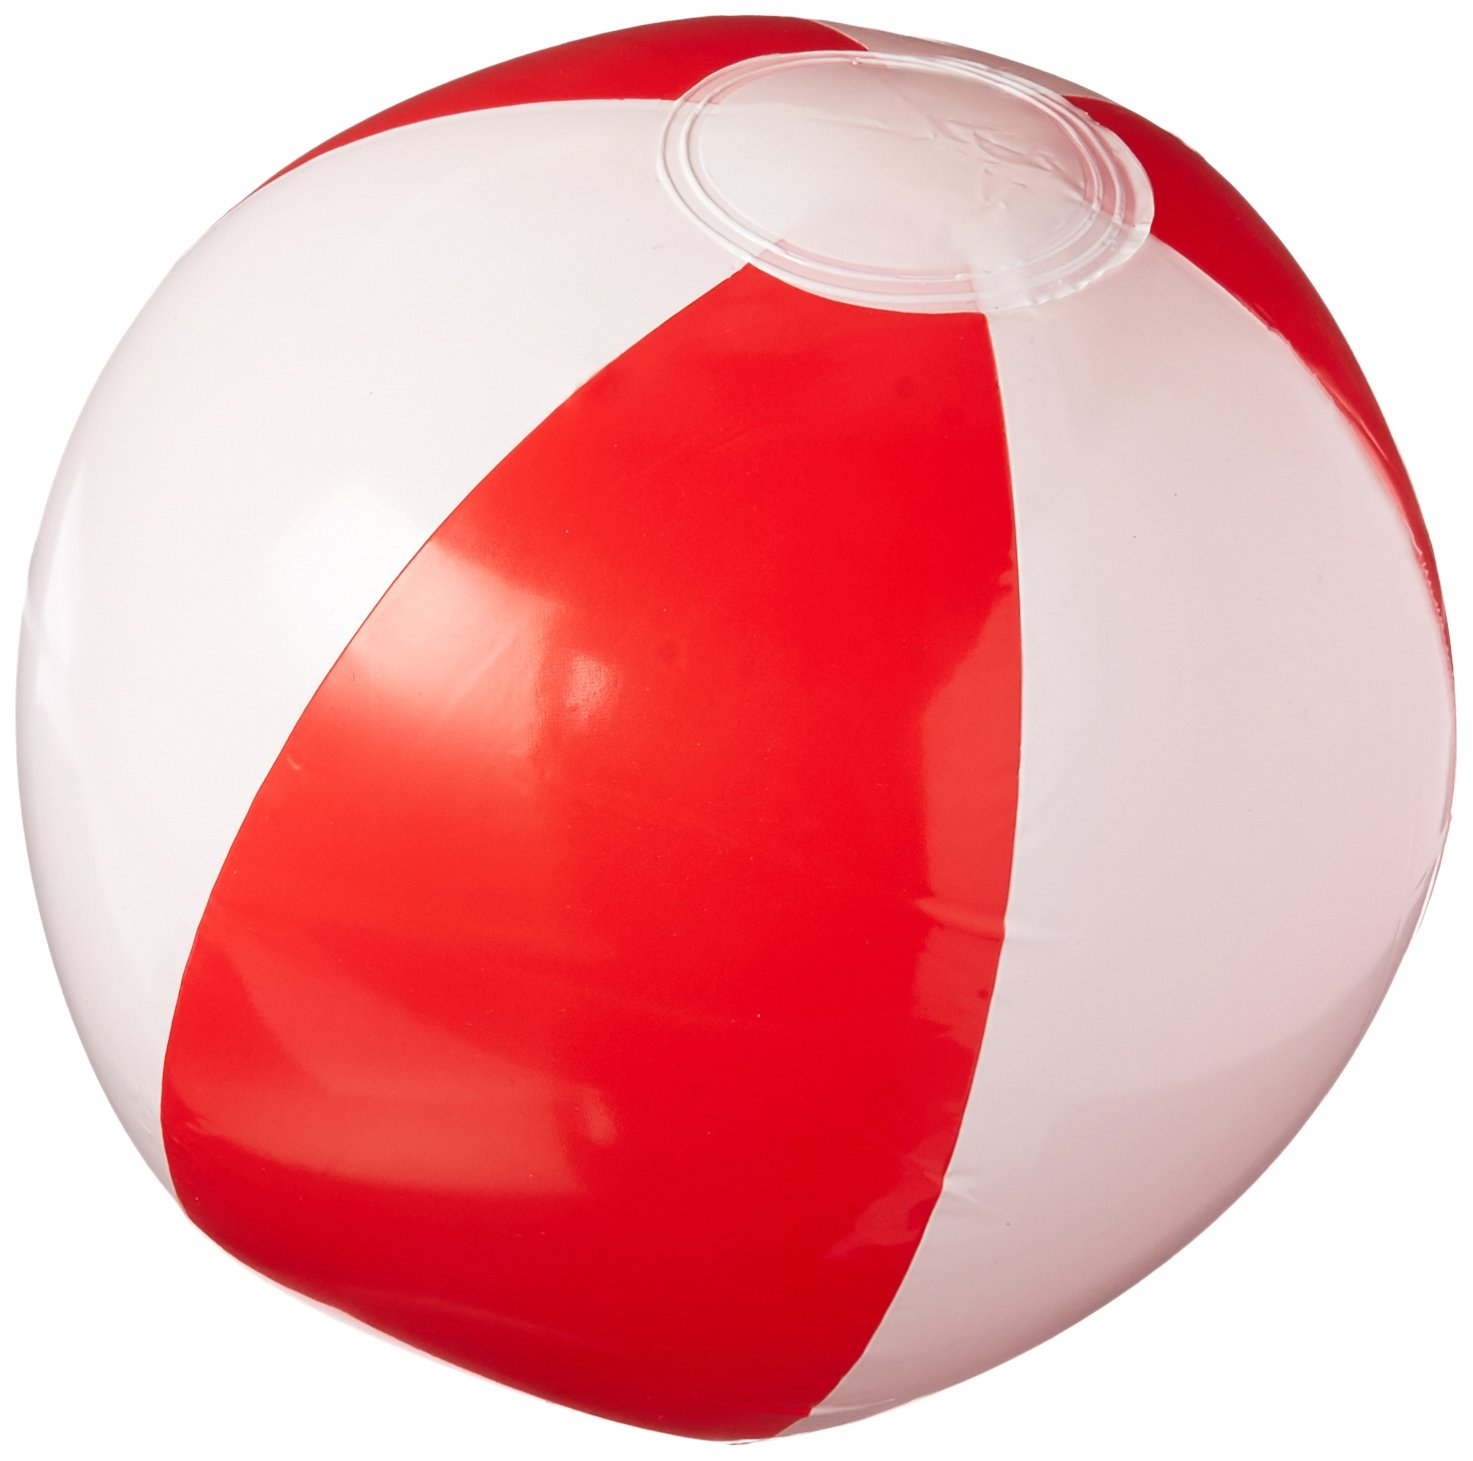 Rhode Island Novelty 12'' Red & White Beach Ball (12 Piece Per Order)